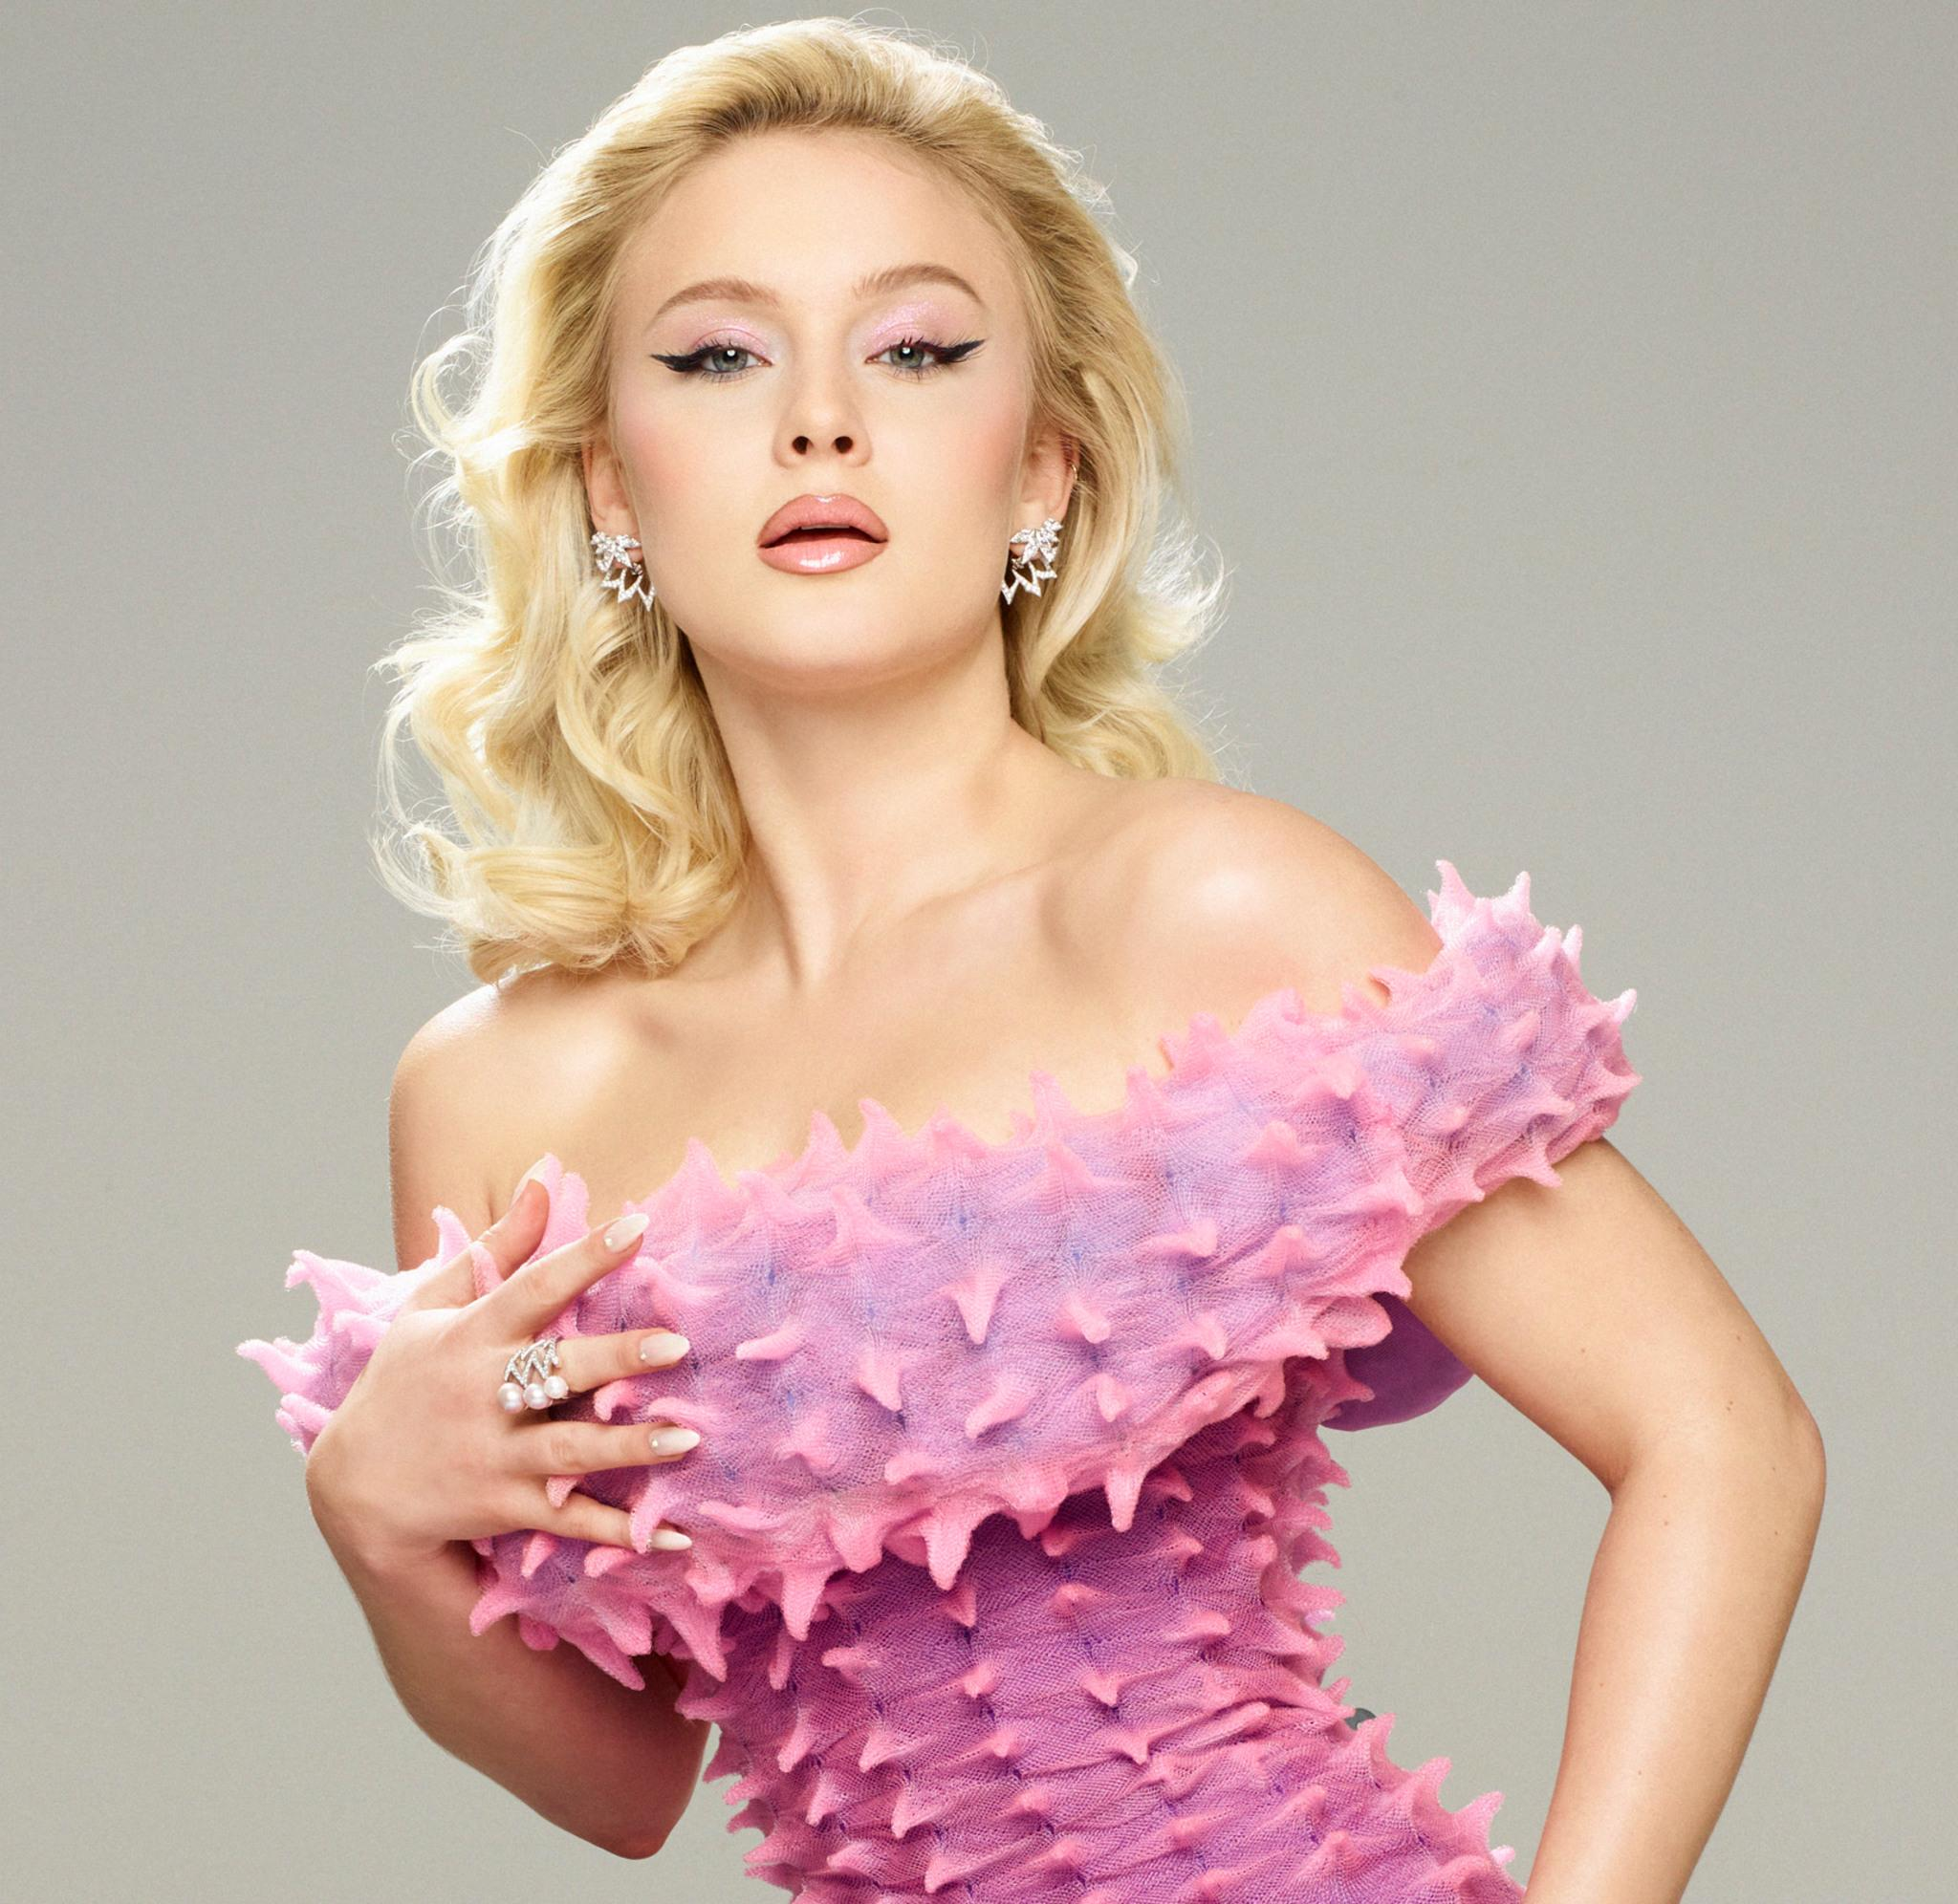 Portrait of Zara Larsson wearing a pink dress with a spike-like surface.